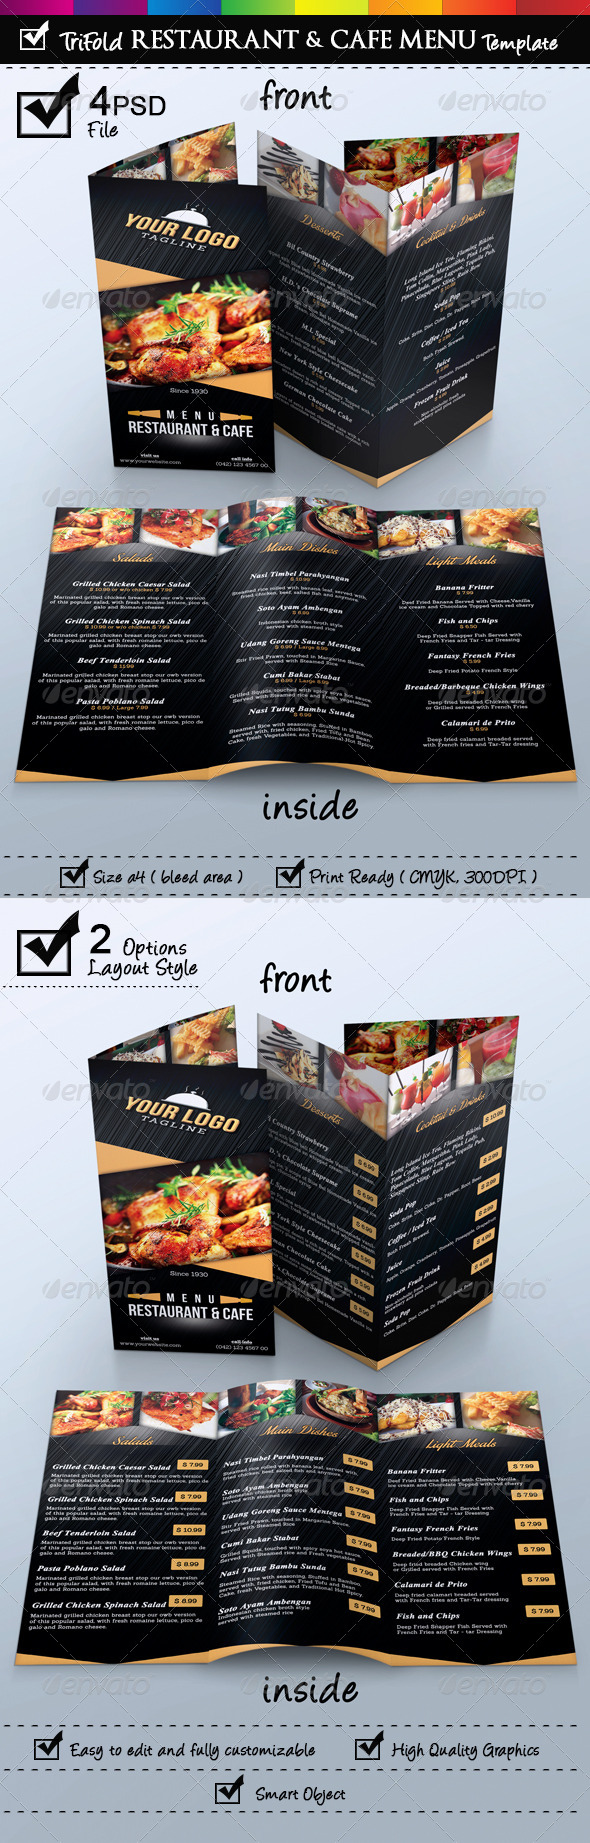 Trifold Restaurant & Cafe Menu Template - Food Menus Print Templates